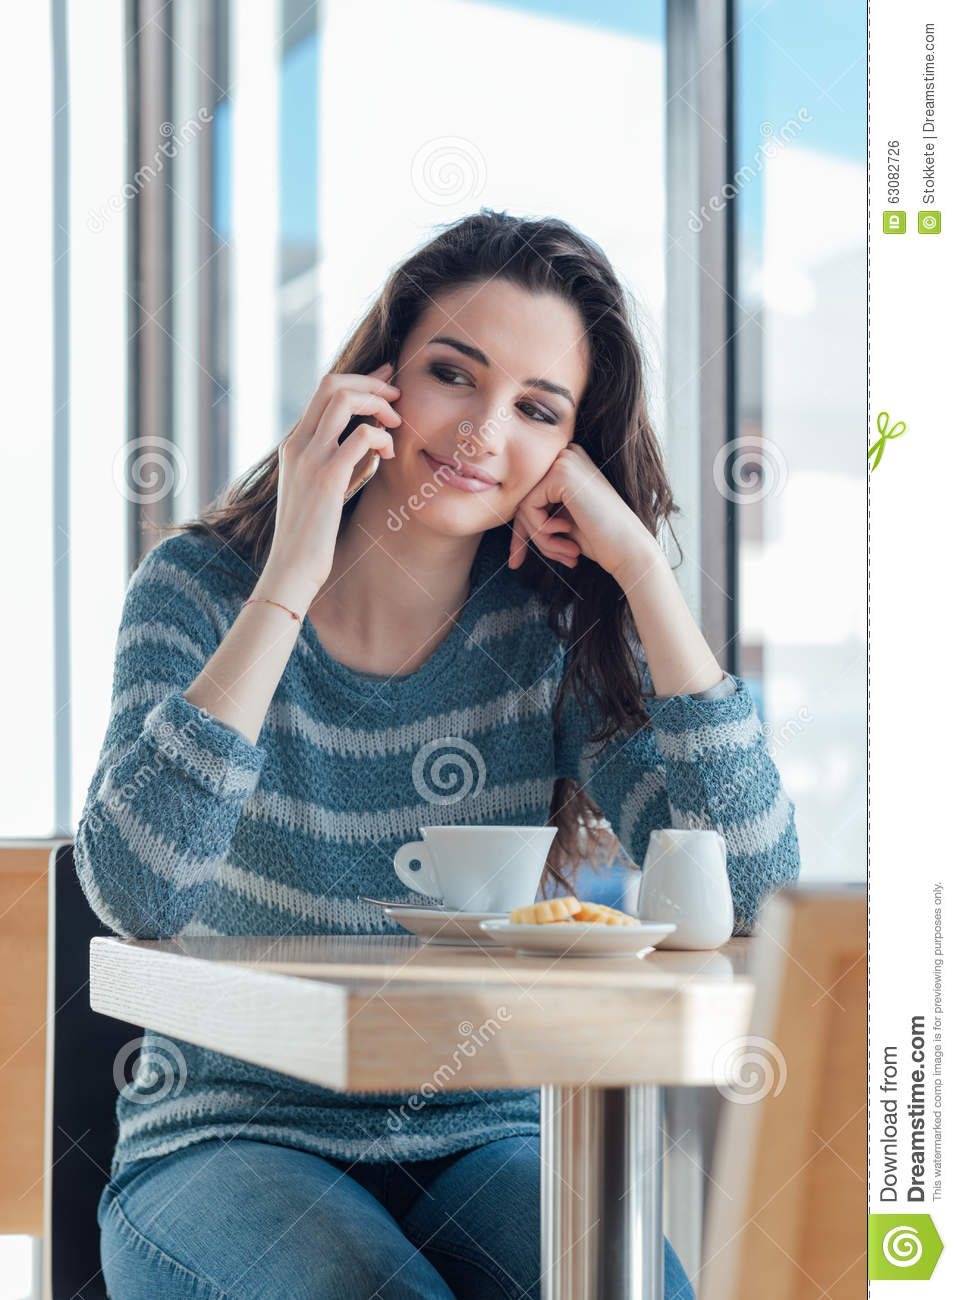 Download Téléphone De Fille Appelant Au Café Photo stock - Image du assez, biscuit: 63082726